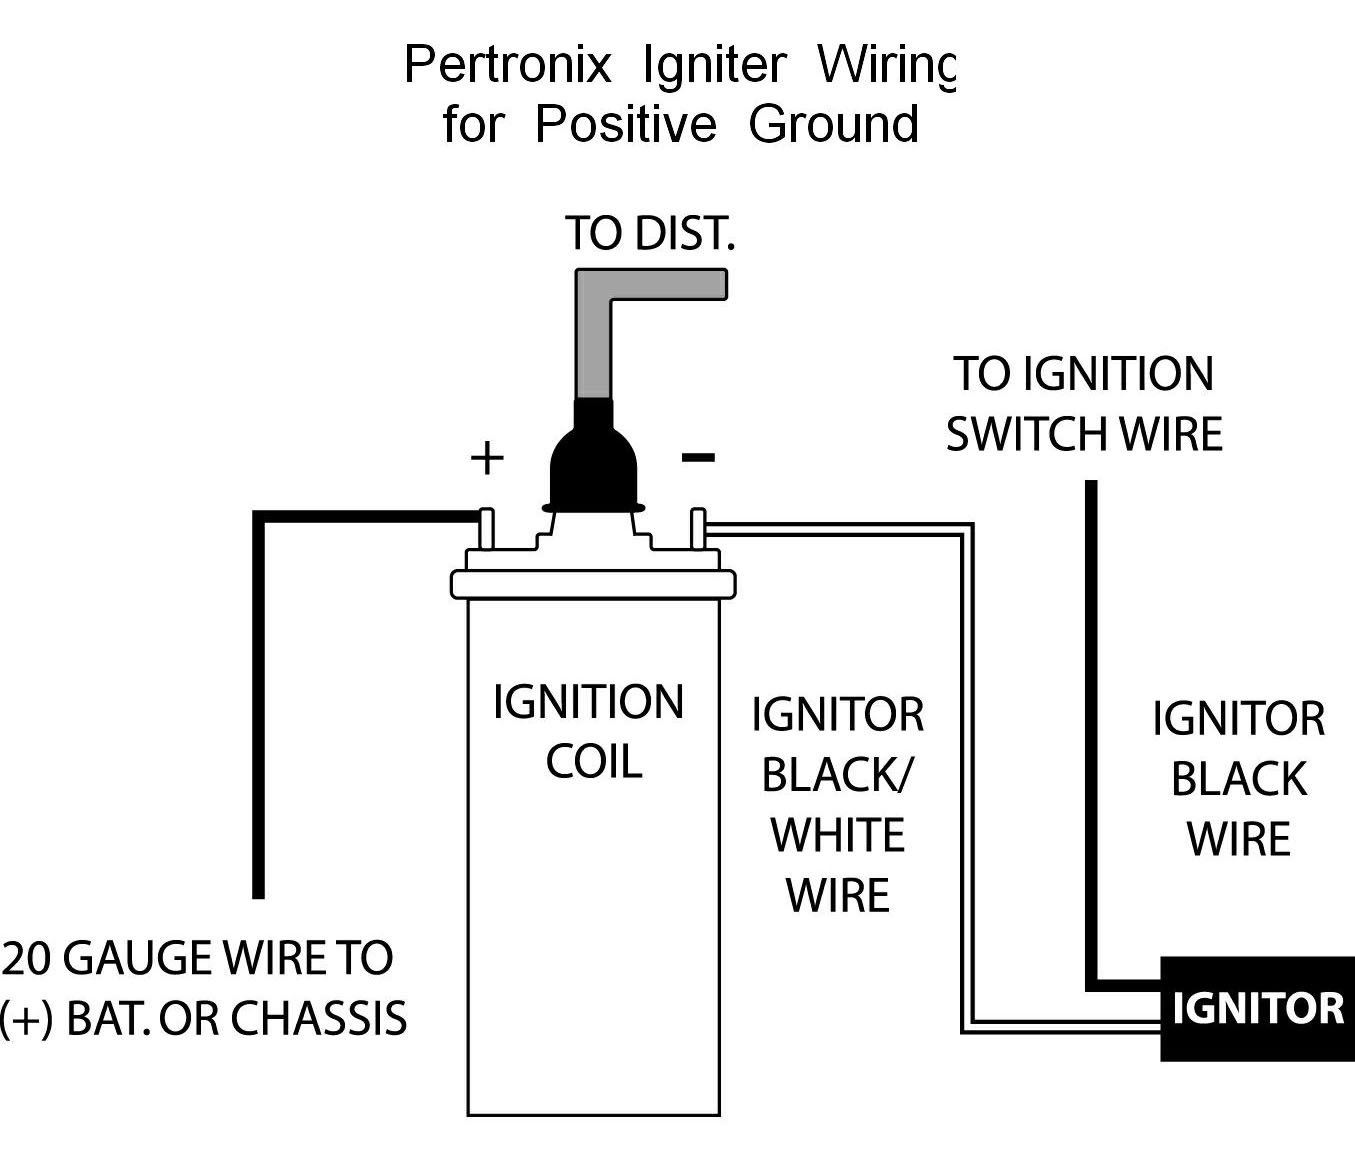 PerPosGndWiring pertronix positive ground wiring positive ground wiring diagram at gsmx.co